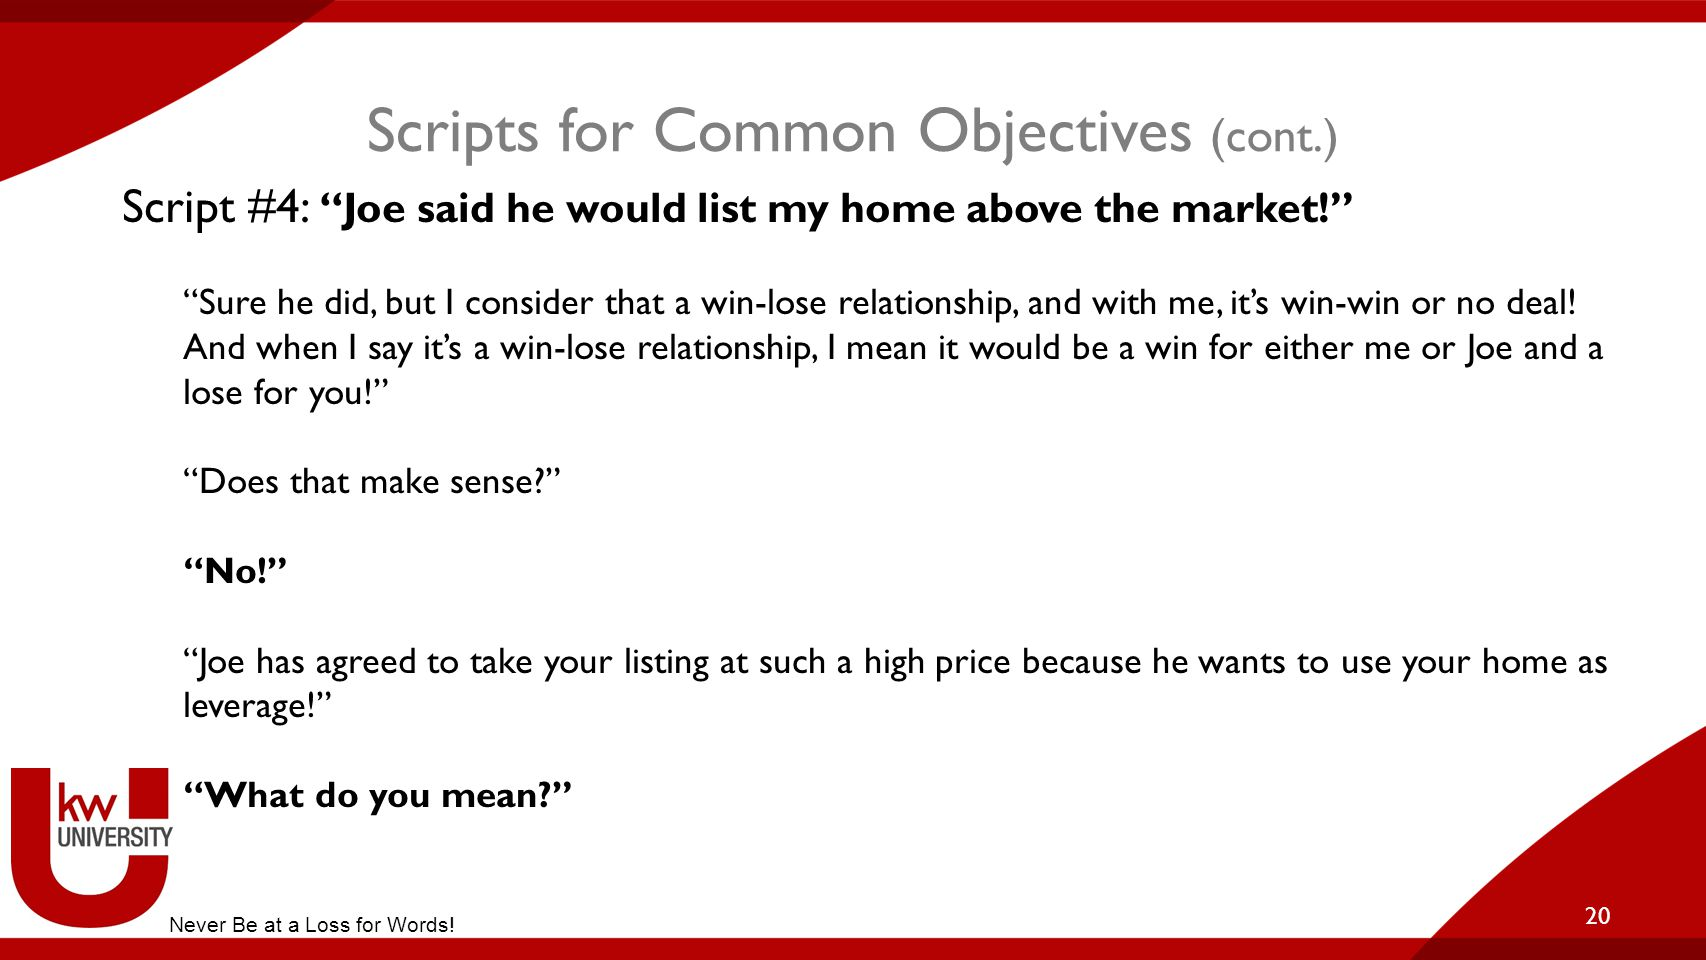 """Scripts for Common Objectives (cont.) 20 Script #4: """"Joe said he would list my home above the market!"""" """"Sure he did, but I consider that a win-lose re"""